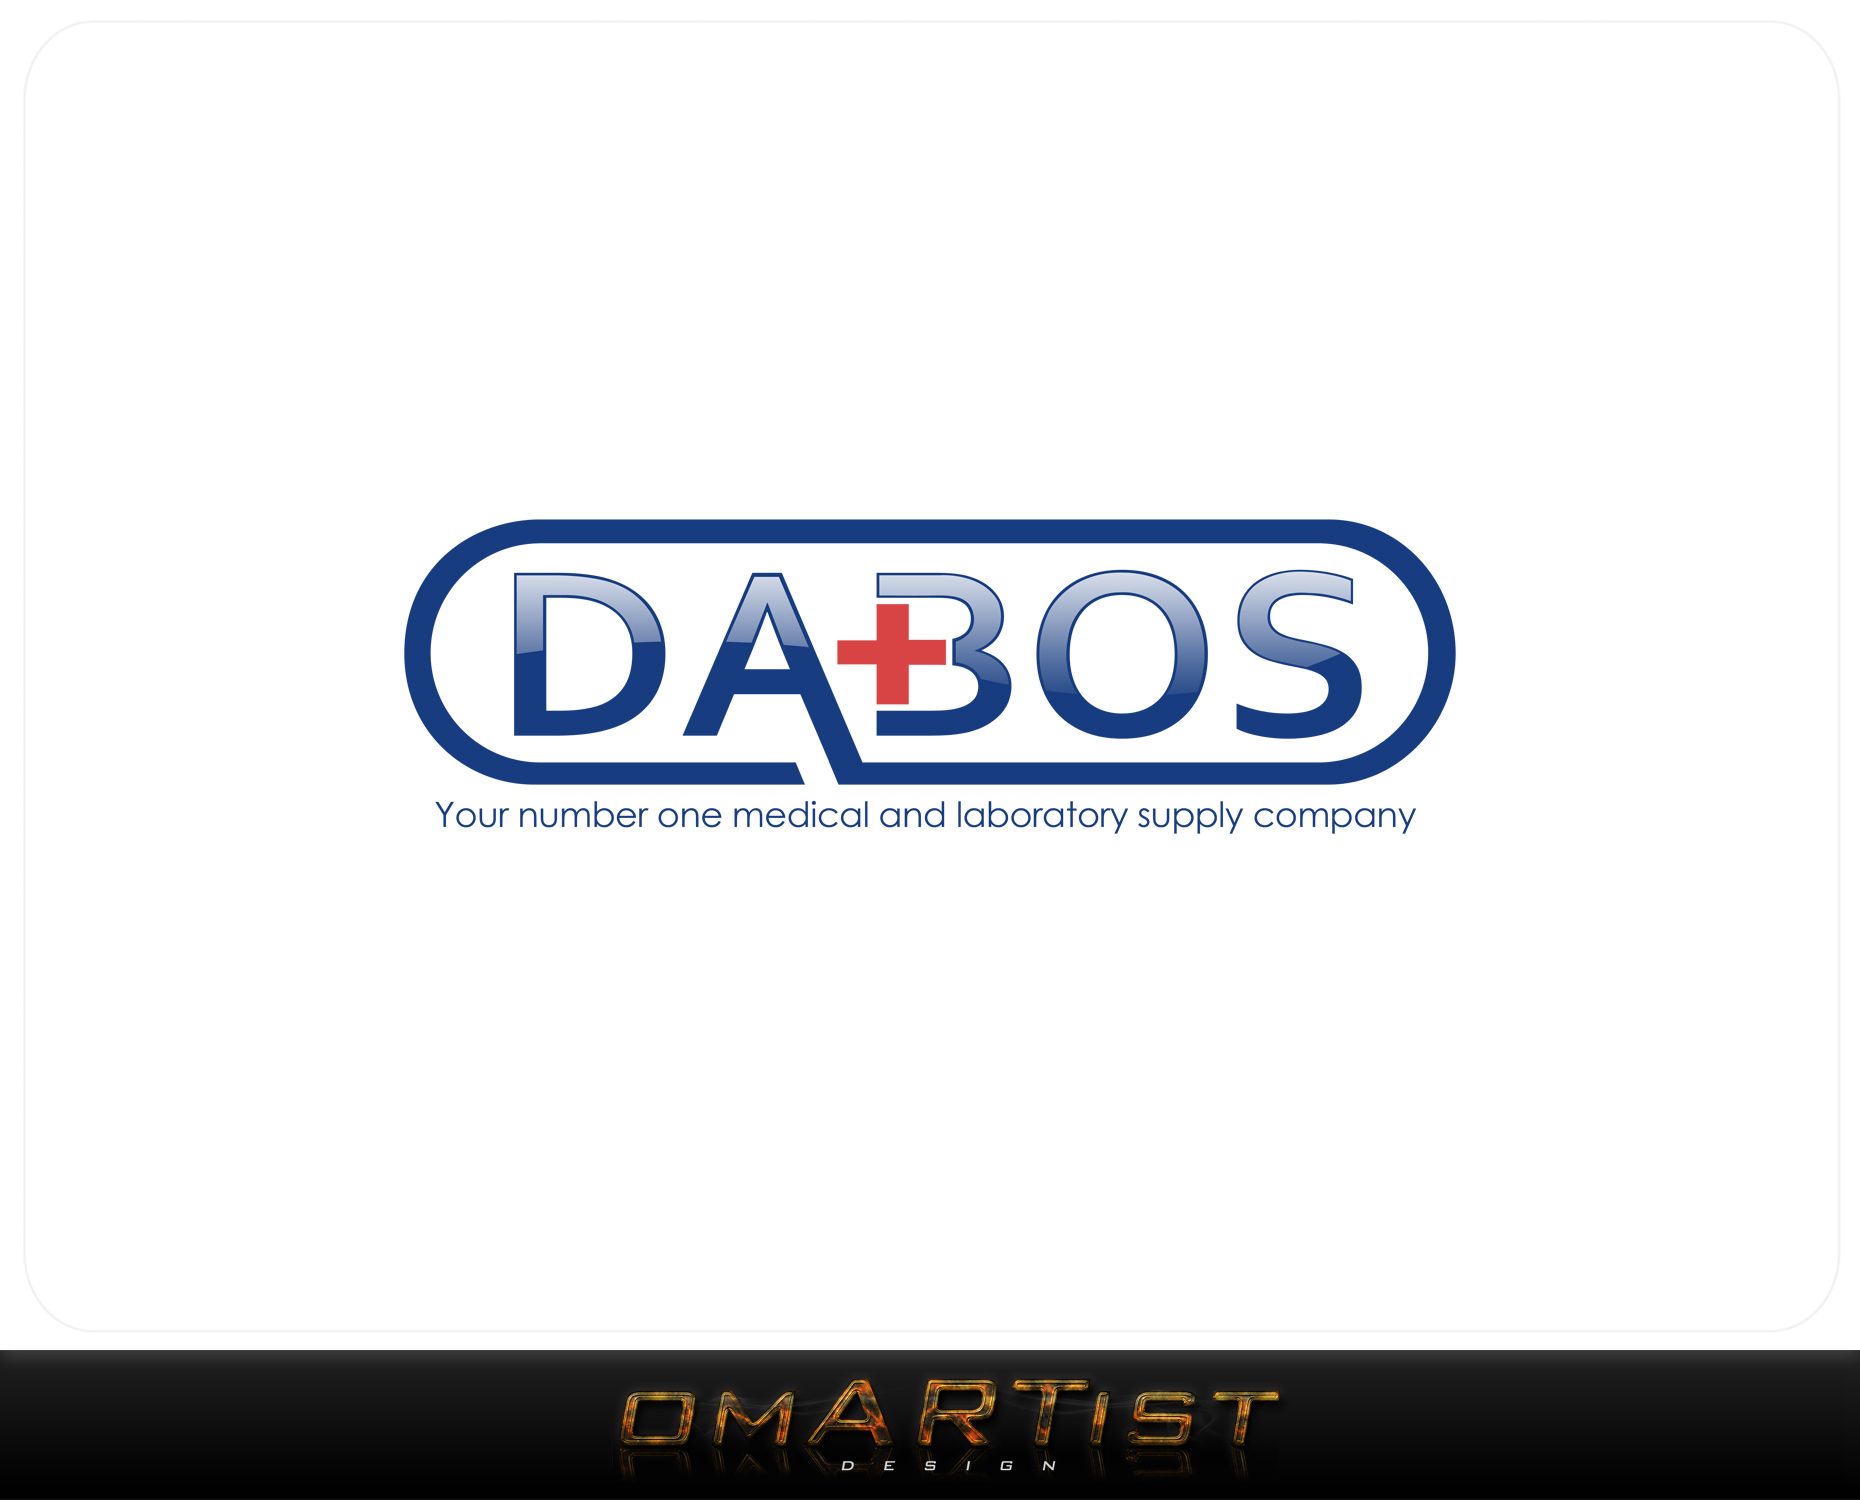 Logo Design by omARTist - Entry No. 92 in the Logo Design Contest Imaginative Logo Design for DABOS, Limited Liability Company.